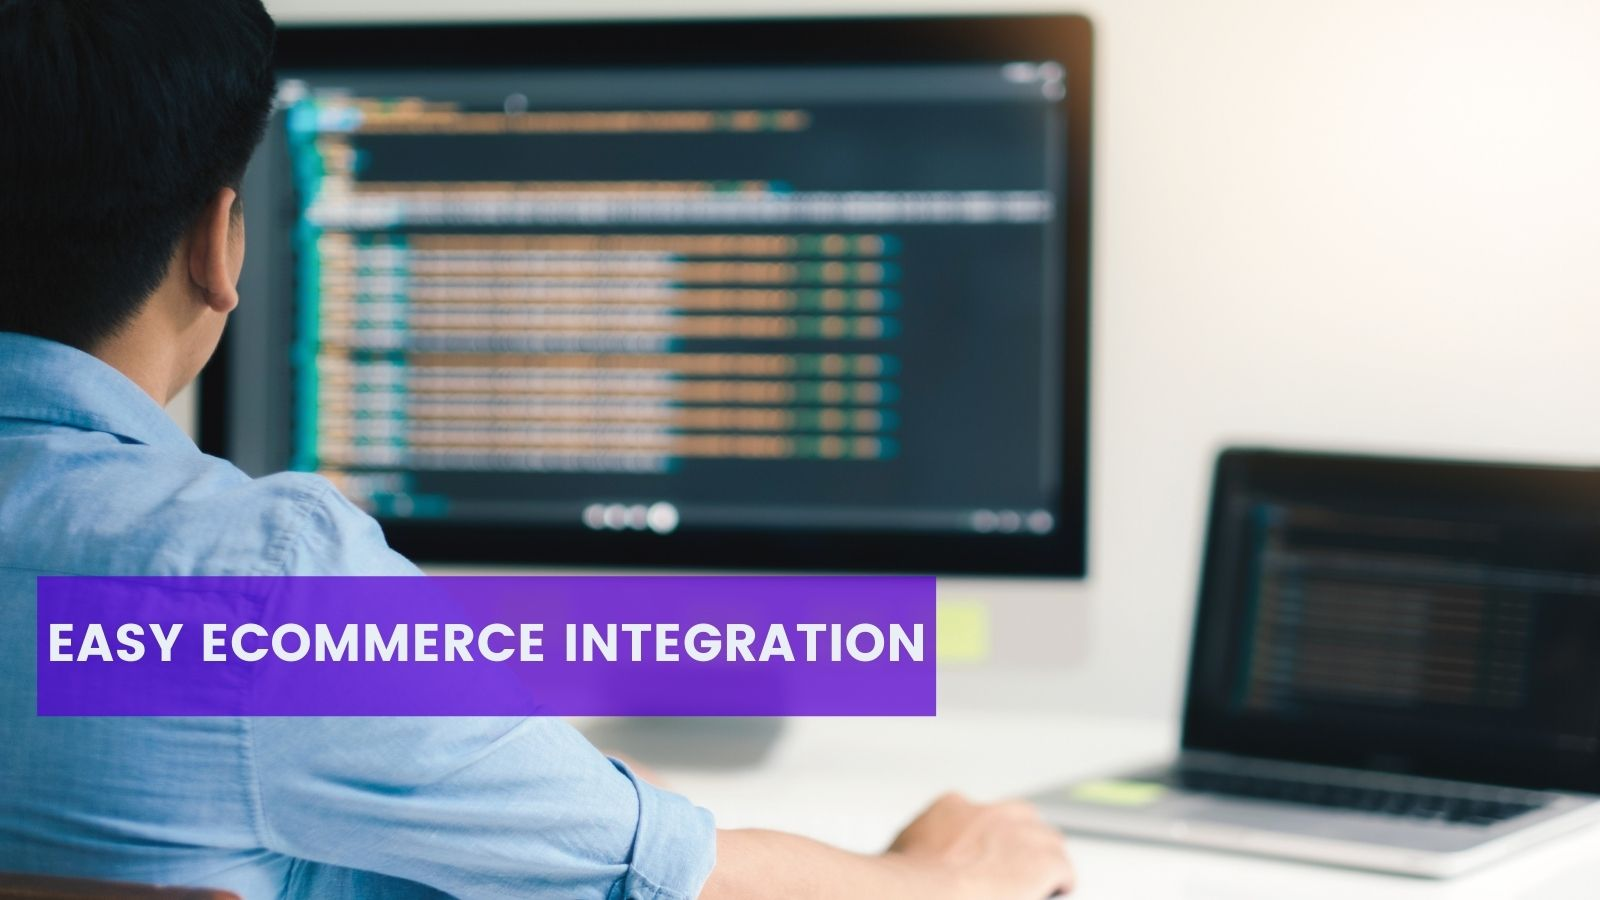 Easy ecommerce integration with Agility CMS